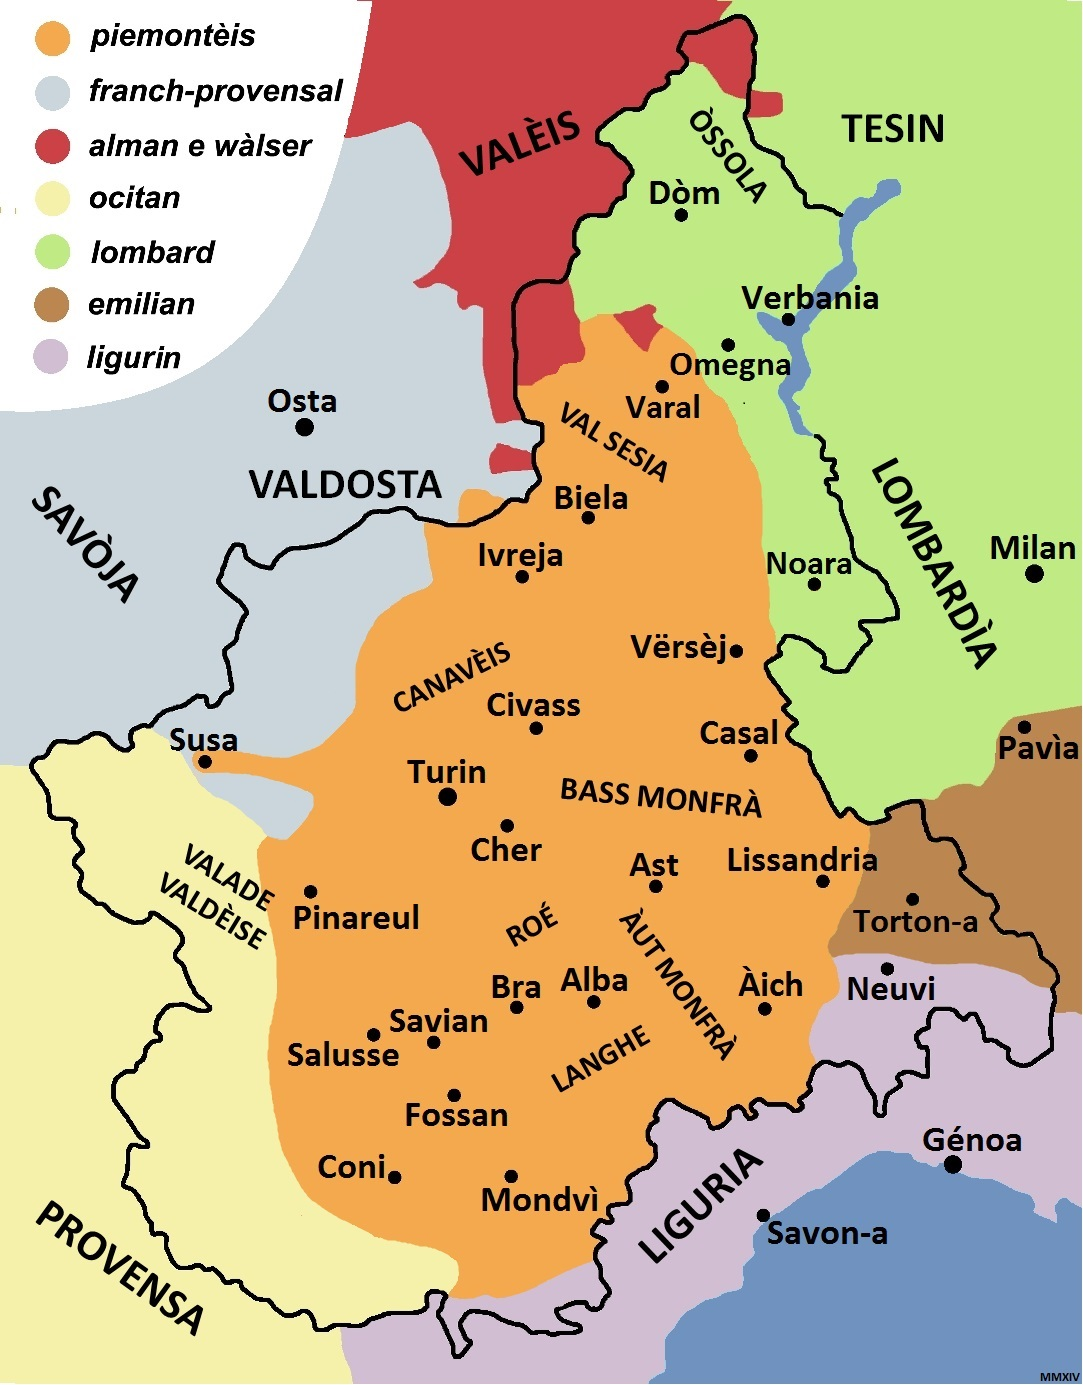 Linguistic Map of Piemontèis